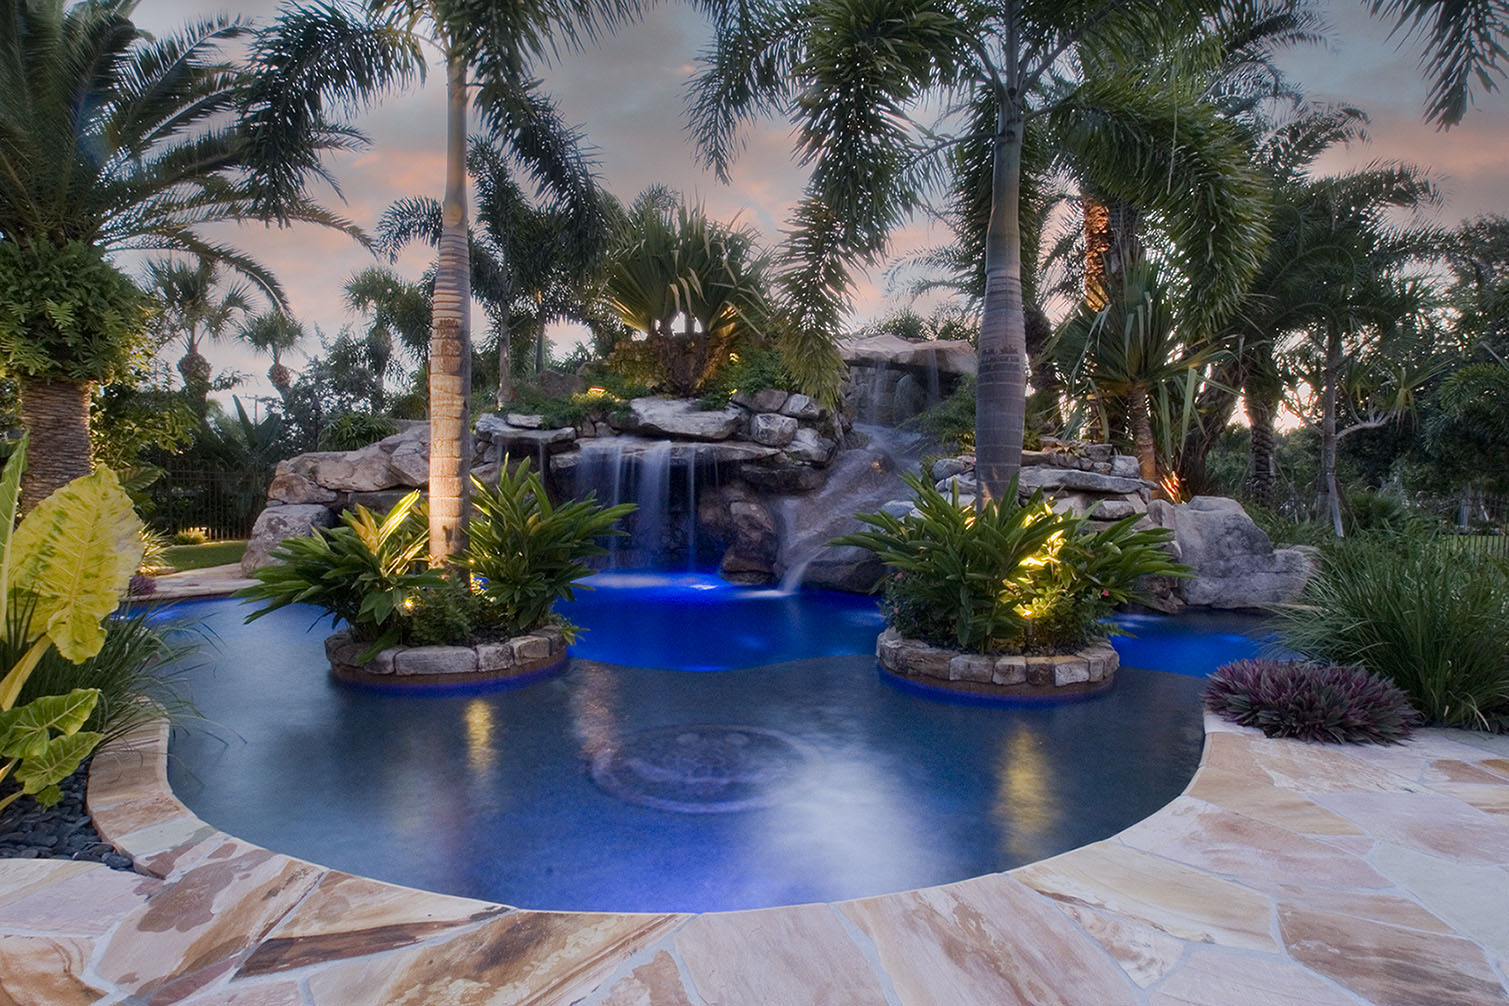 Pool And Spa Outdoor Design By Lucas Page 3